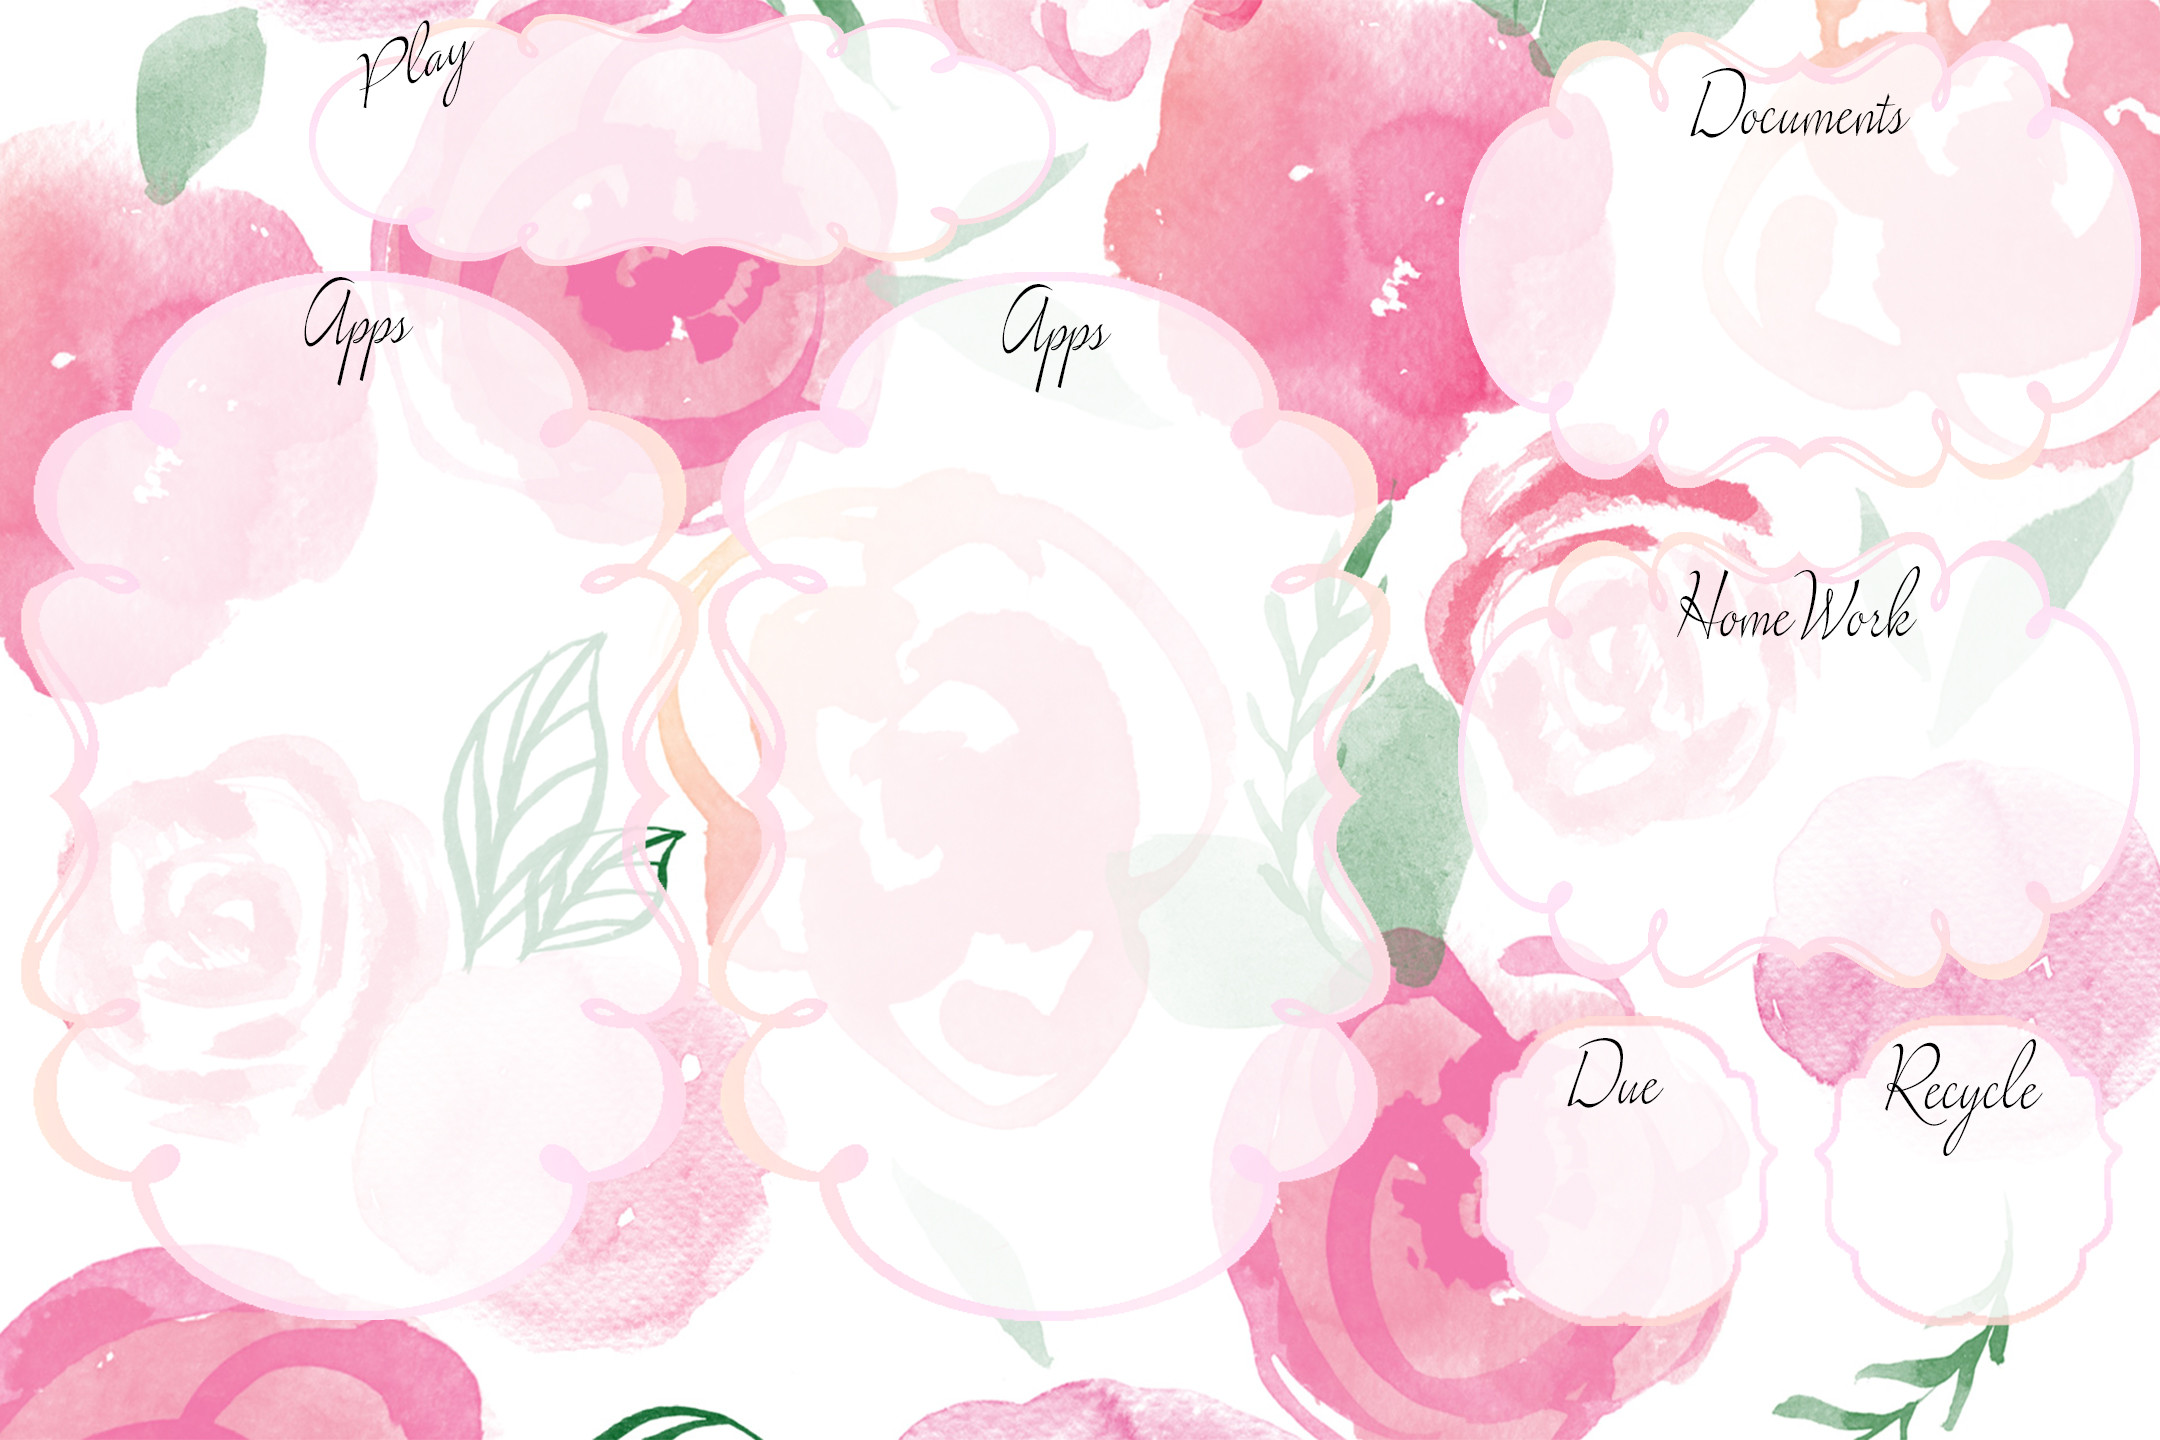 May 4, 2017 by nailsbyt | Comments Off on Rose Desktop Organizer. Â«